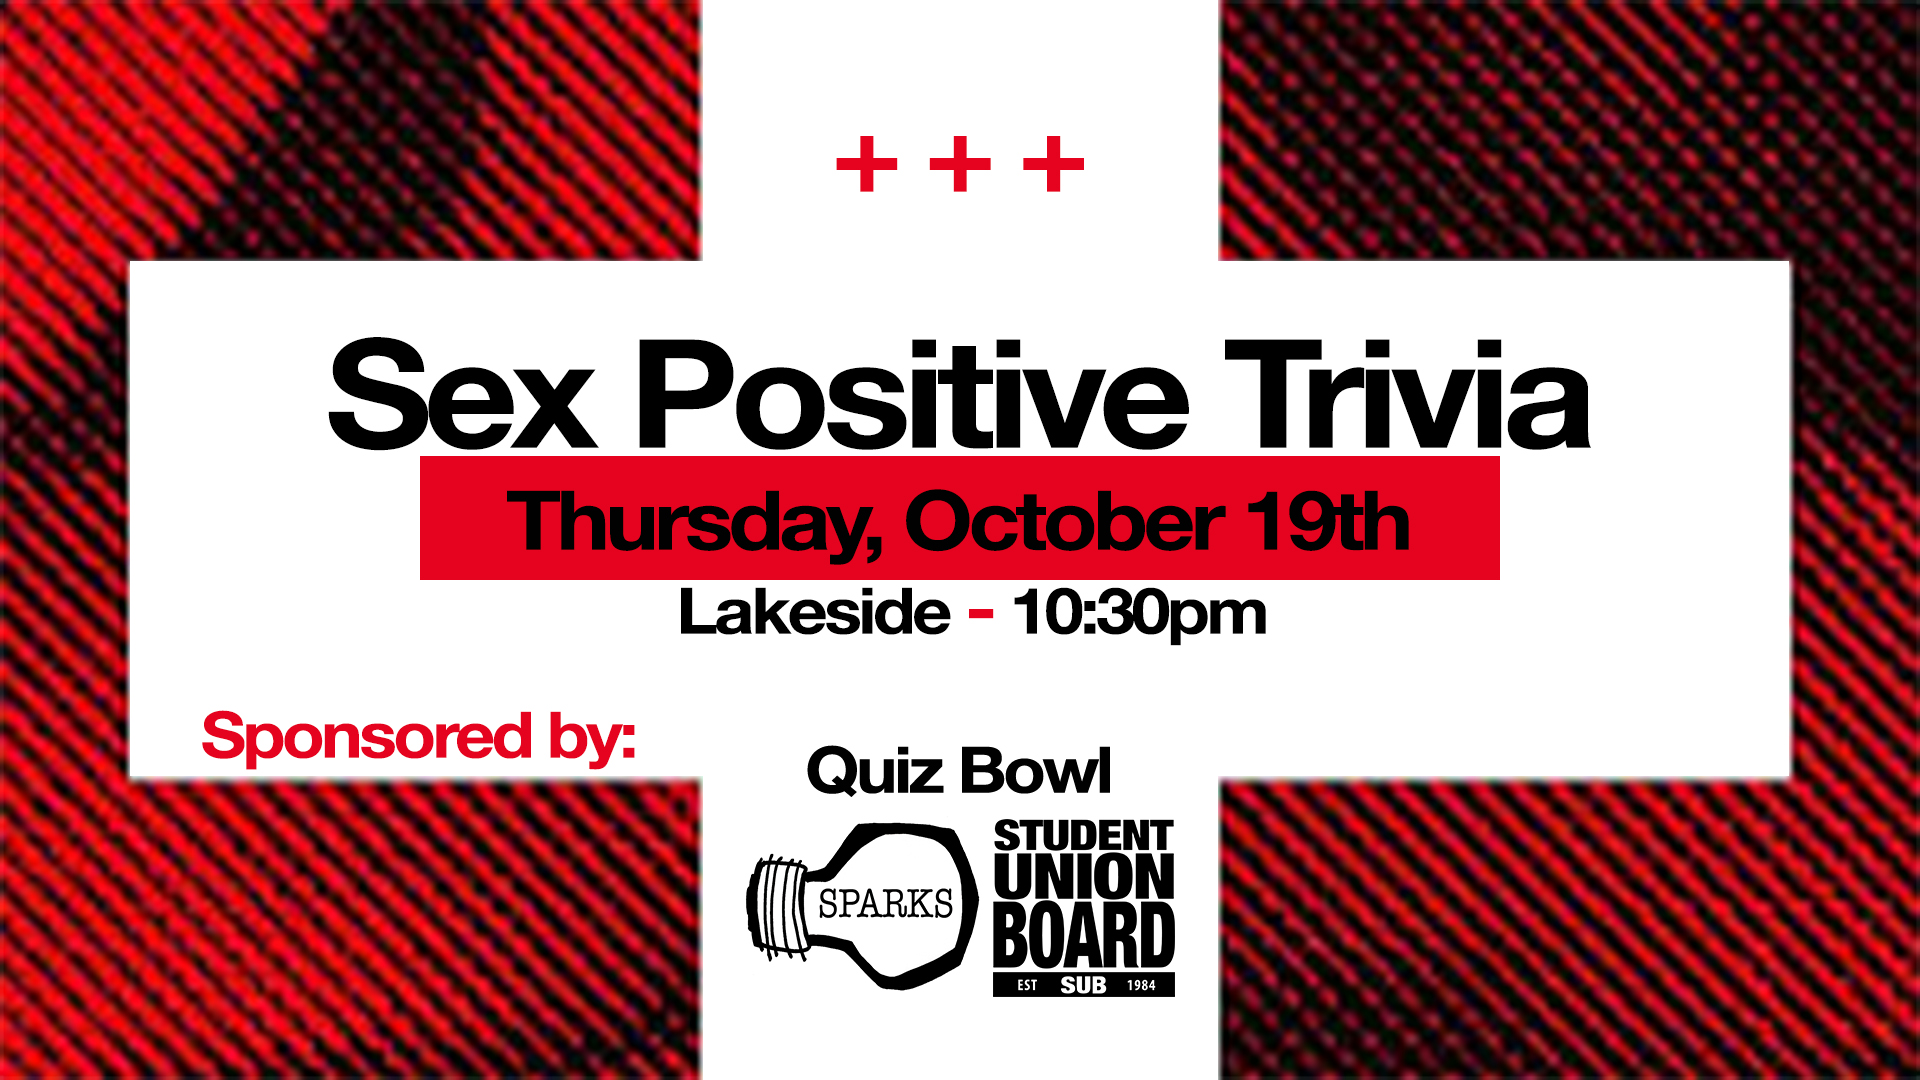 Learn some sex positive facts during this week's trivia on Thursday starting at 10:30pm in Lakeside!